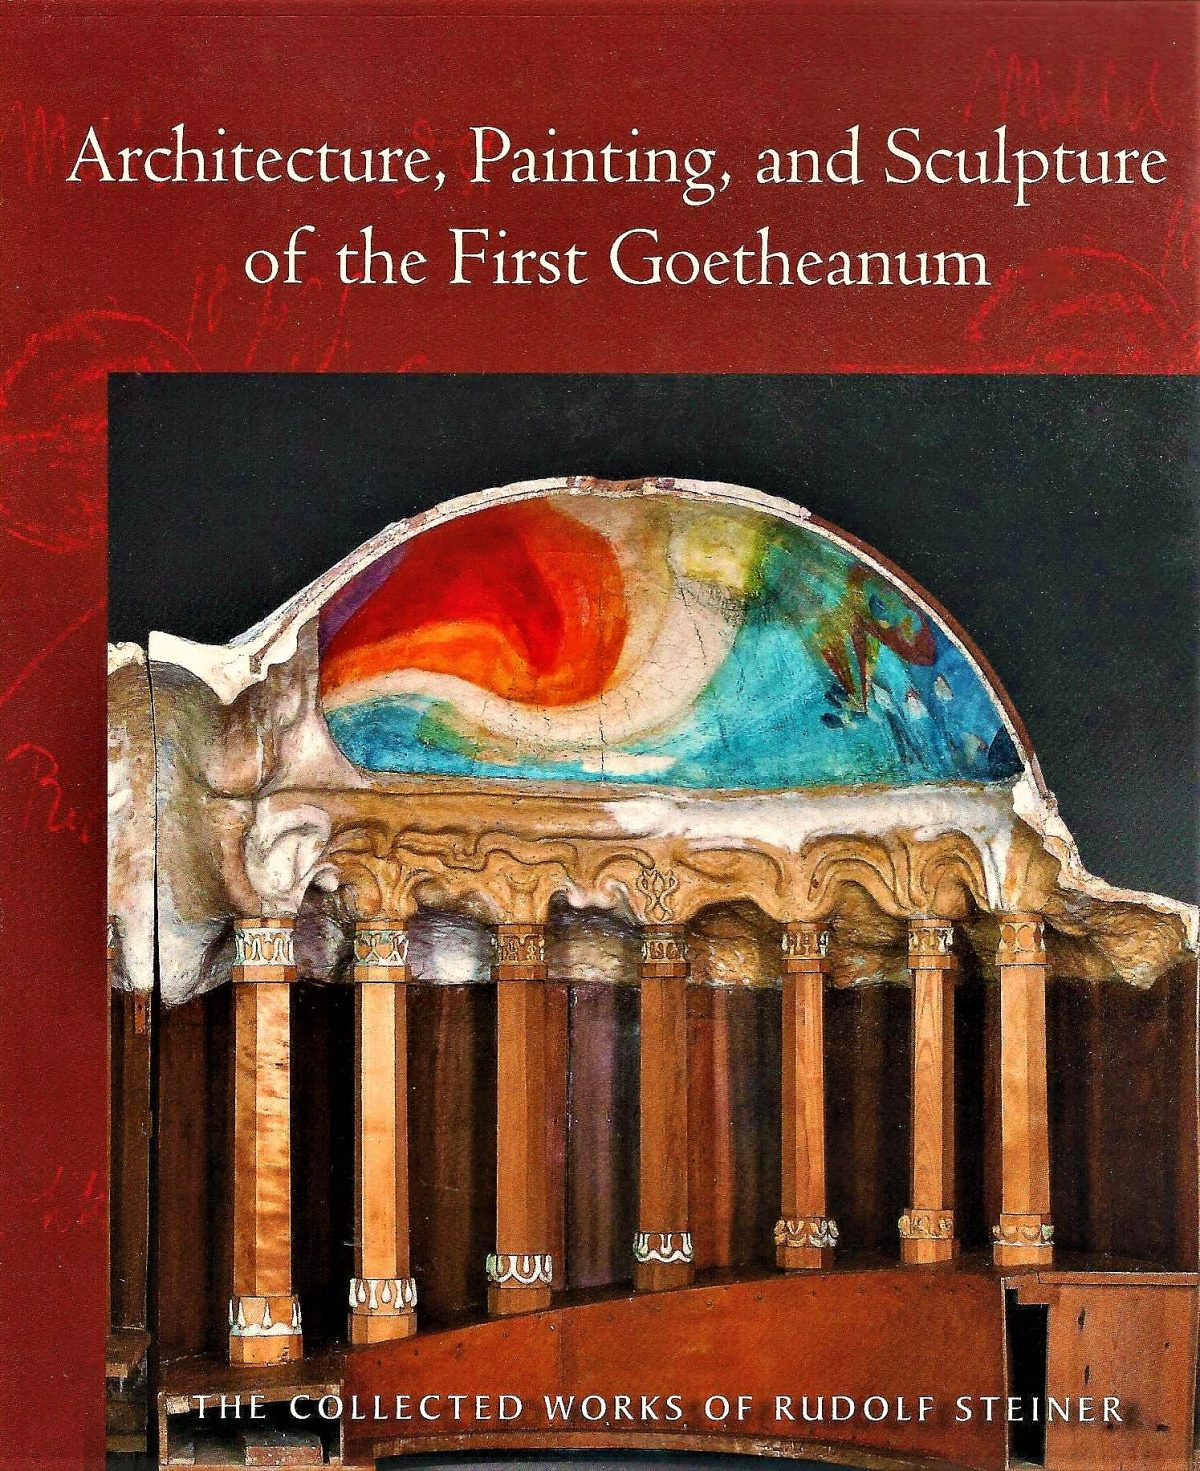 Architecture, Sculpture, and Painting of the First Goetheanum, CW 288